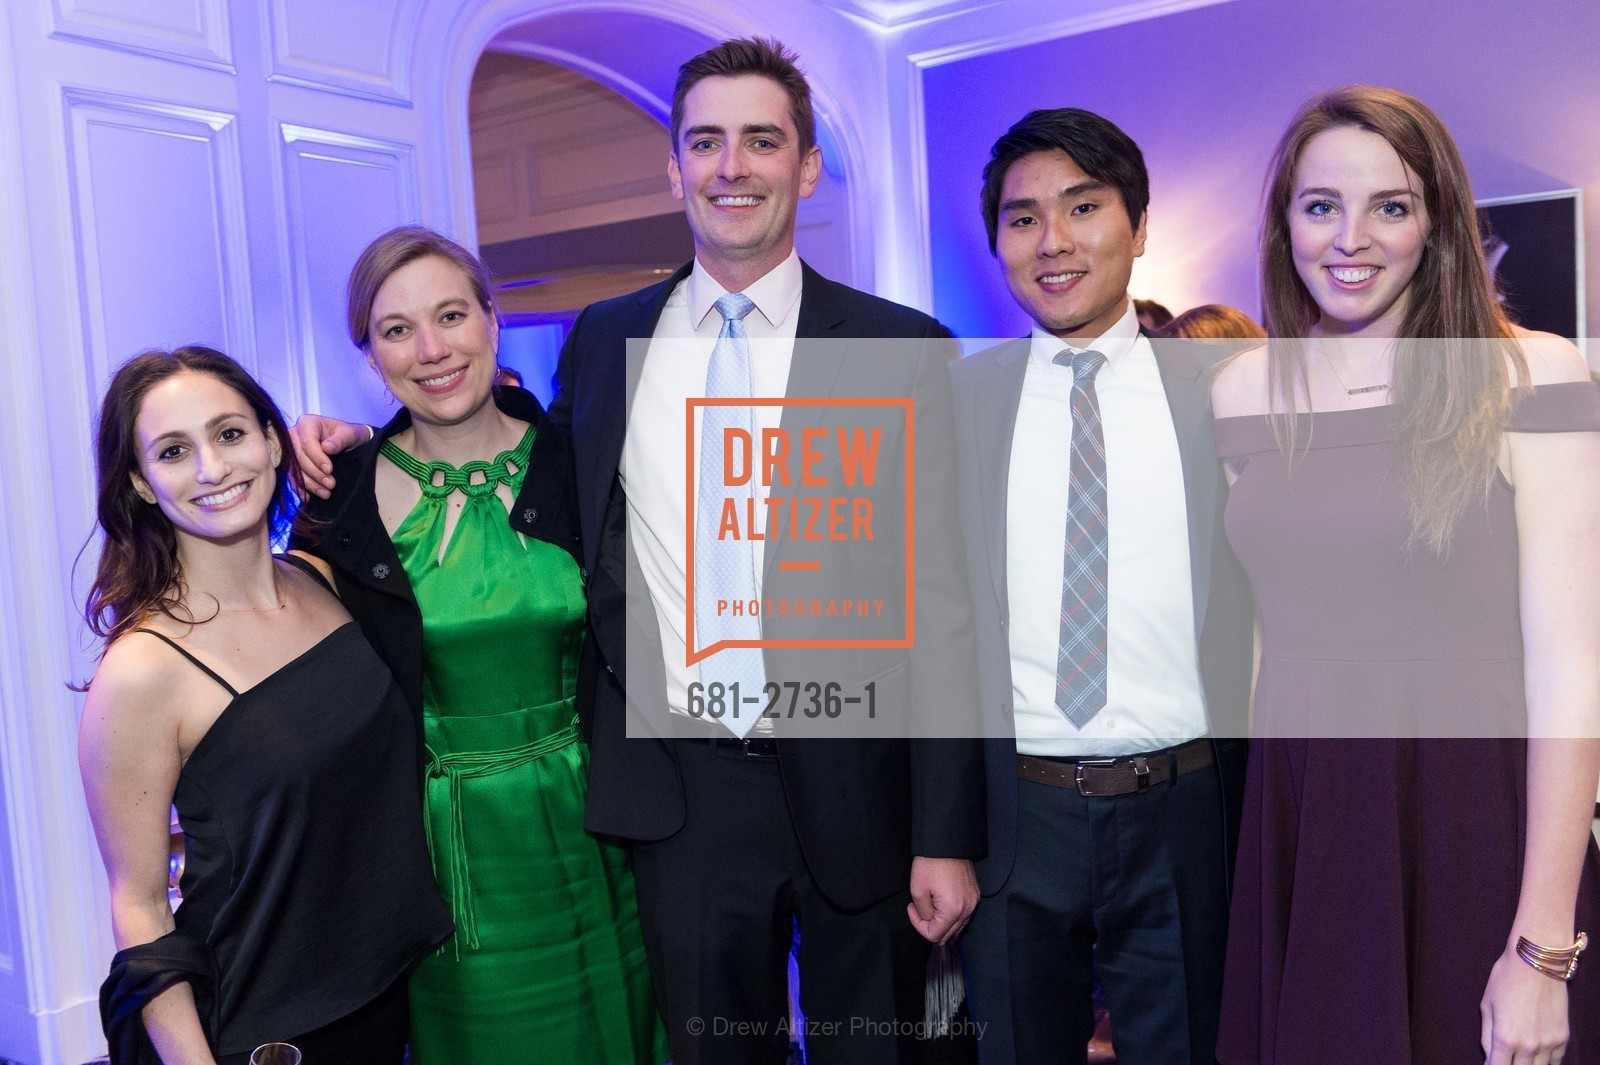 Laura Sack, Josie Chiles, Ian Dunckel, Danny Chang, Emily Hudson, Photo #681-2736-1